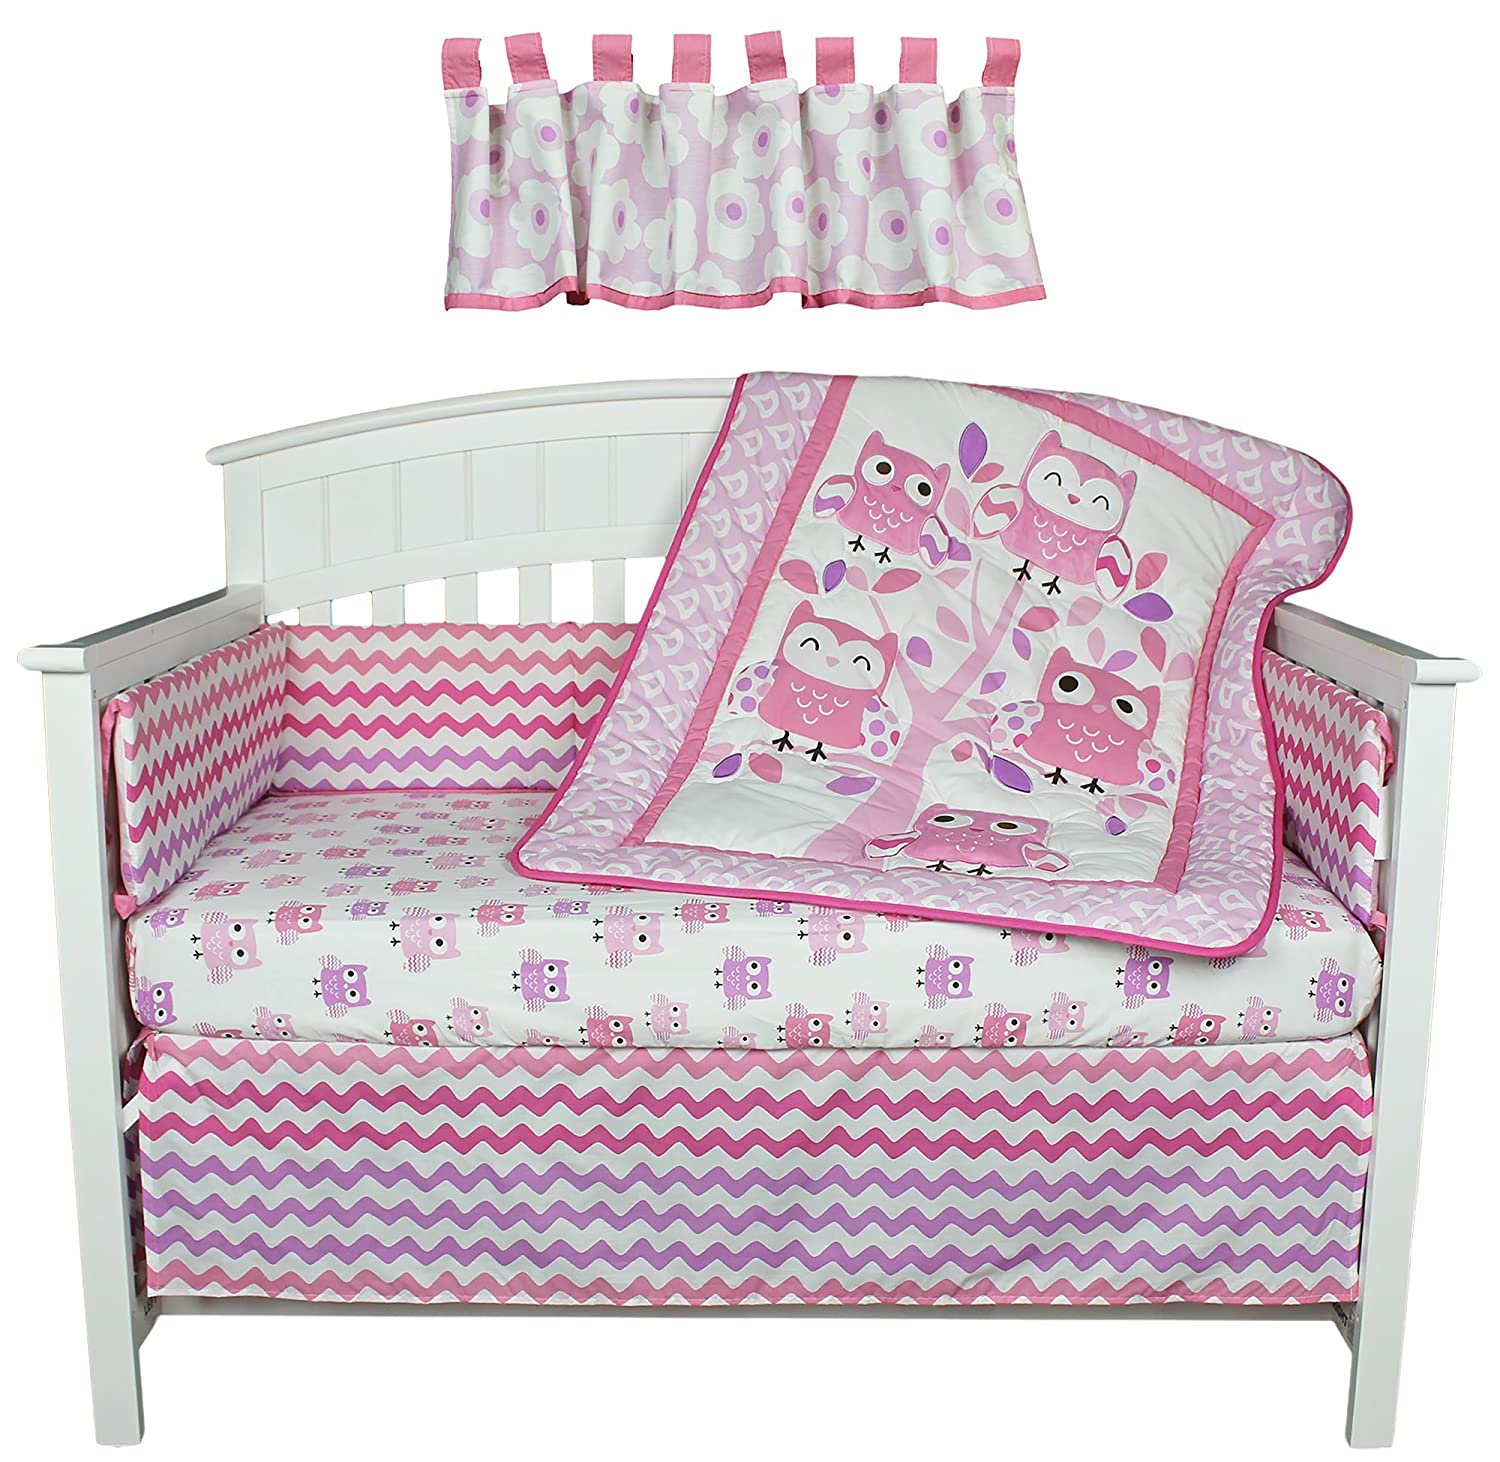 Dancing Owls Zig Zag Pink and Purple 5 Piece Baby Girl Crib Bedding with Bumper by Belle